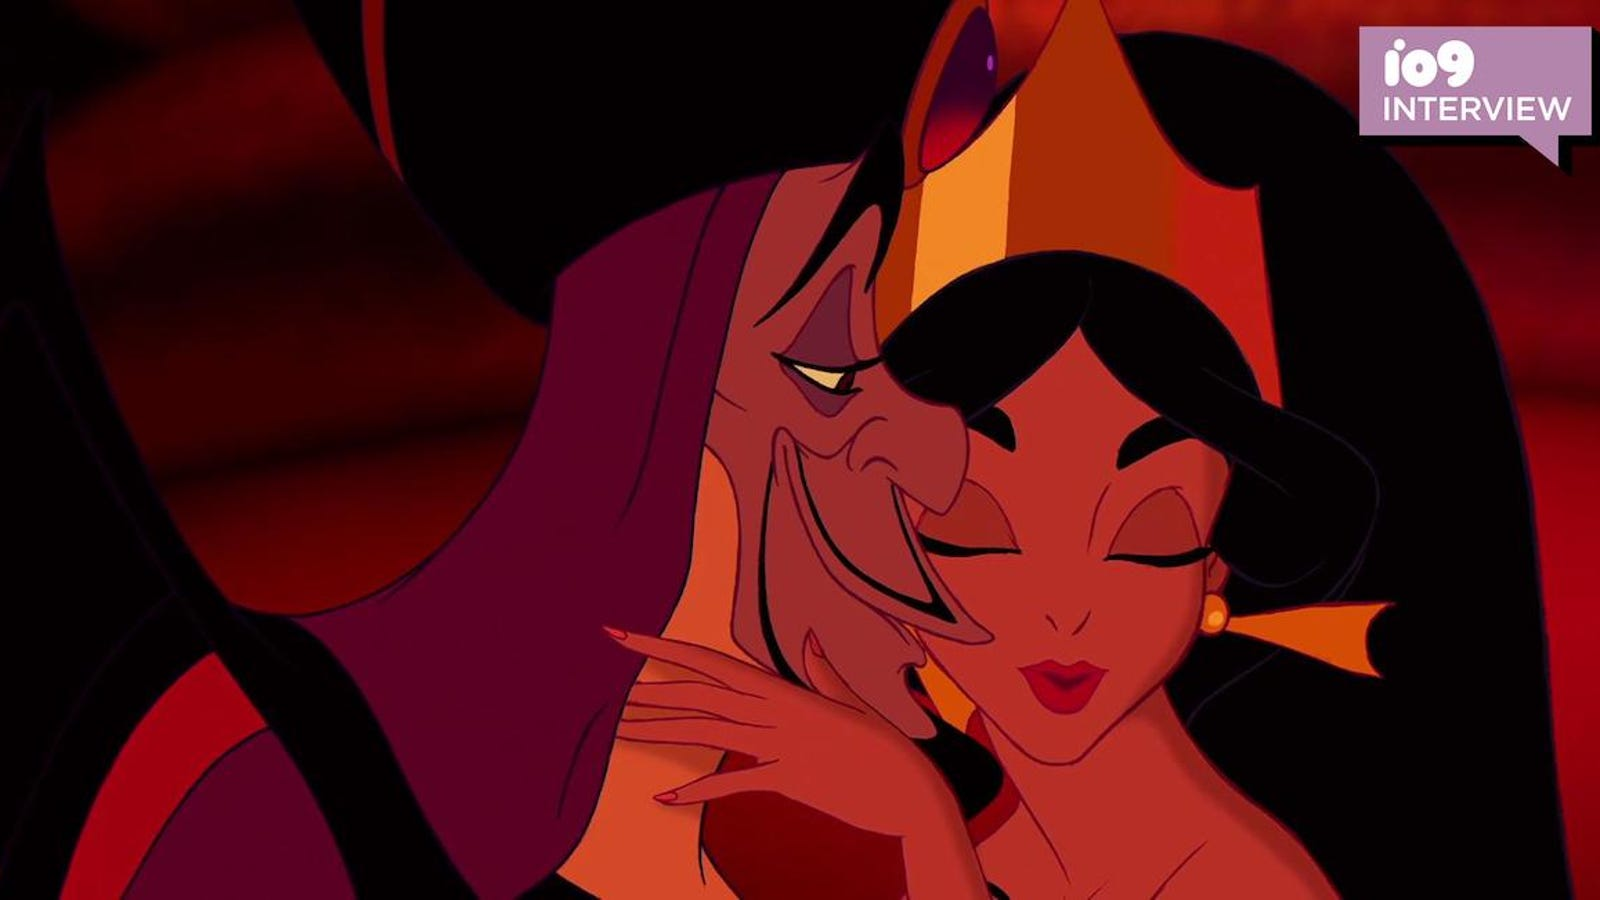 Meet the Erotica Author Who's Making Disney Villains Fuck